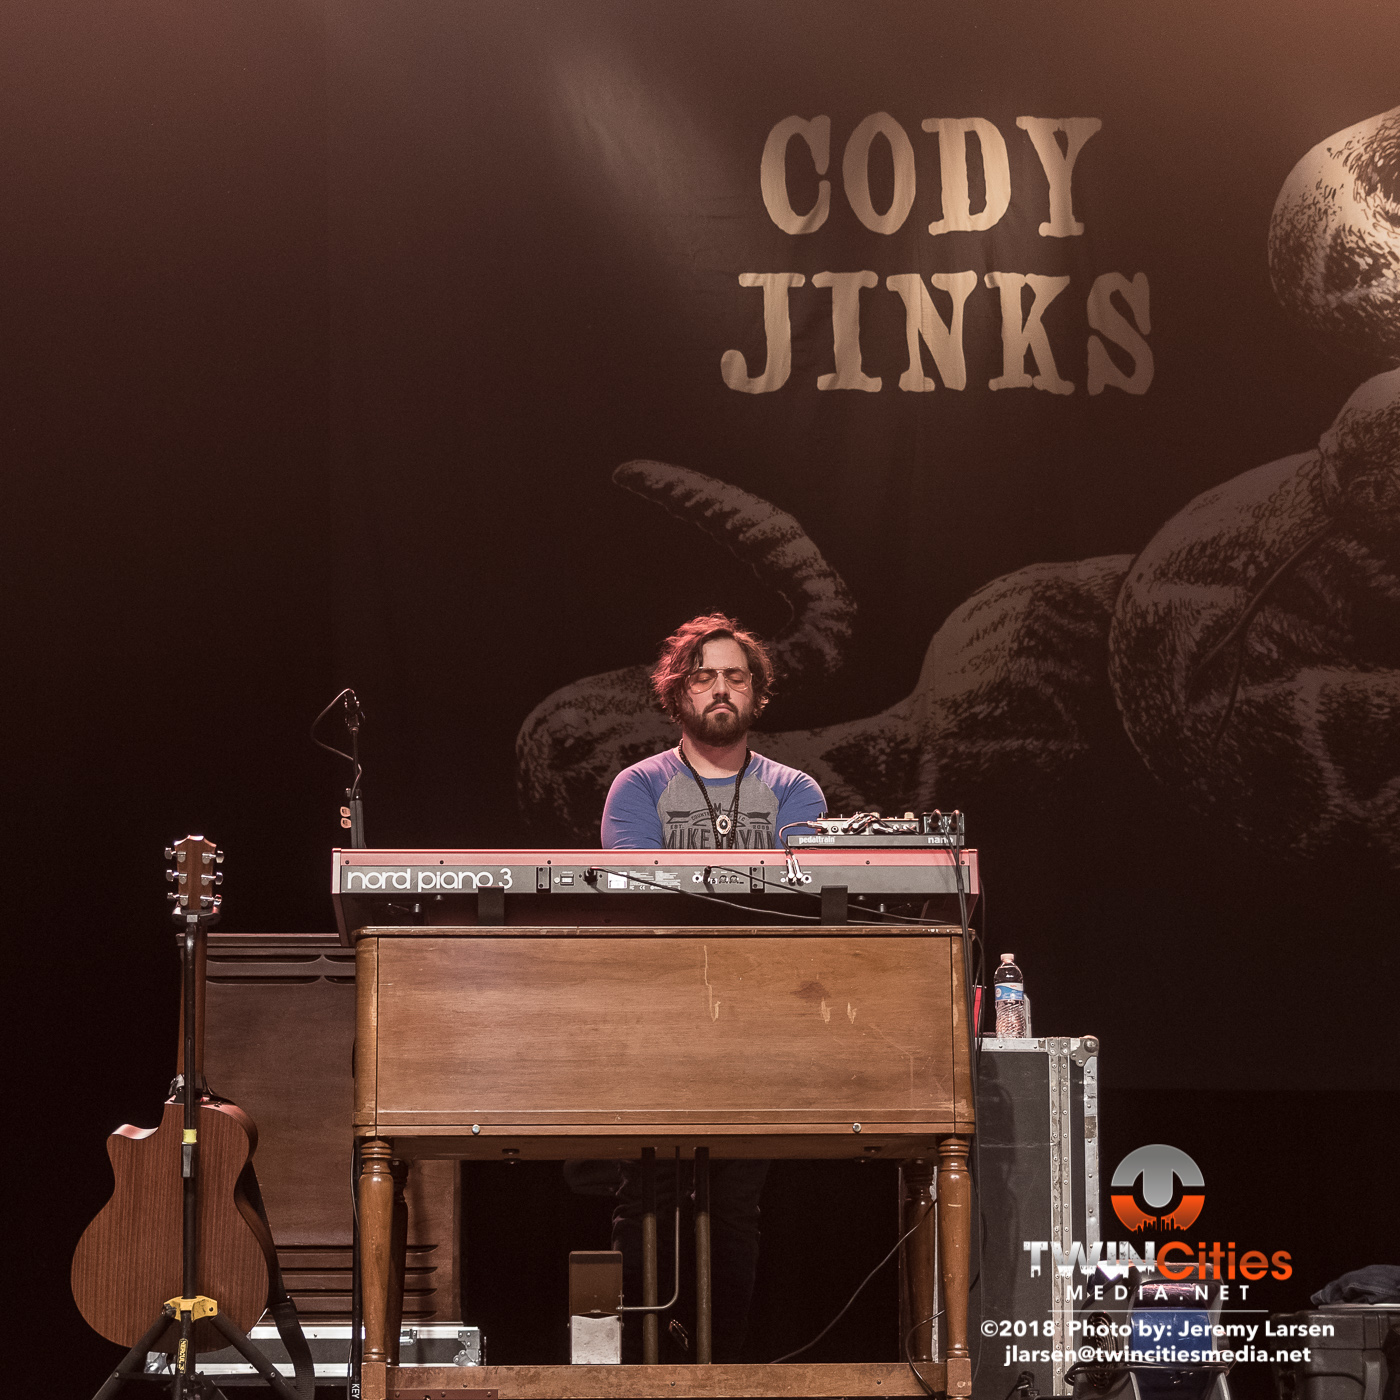 Cody-Jinks-Verizon-Grand-Hall-3-22-19-2